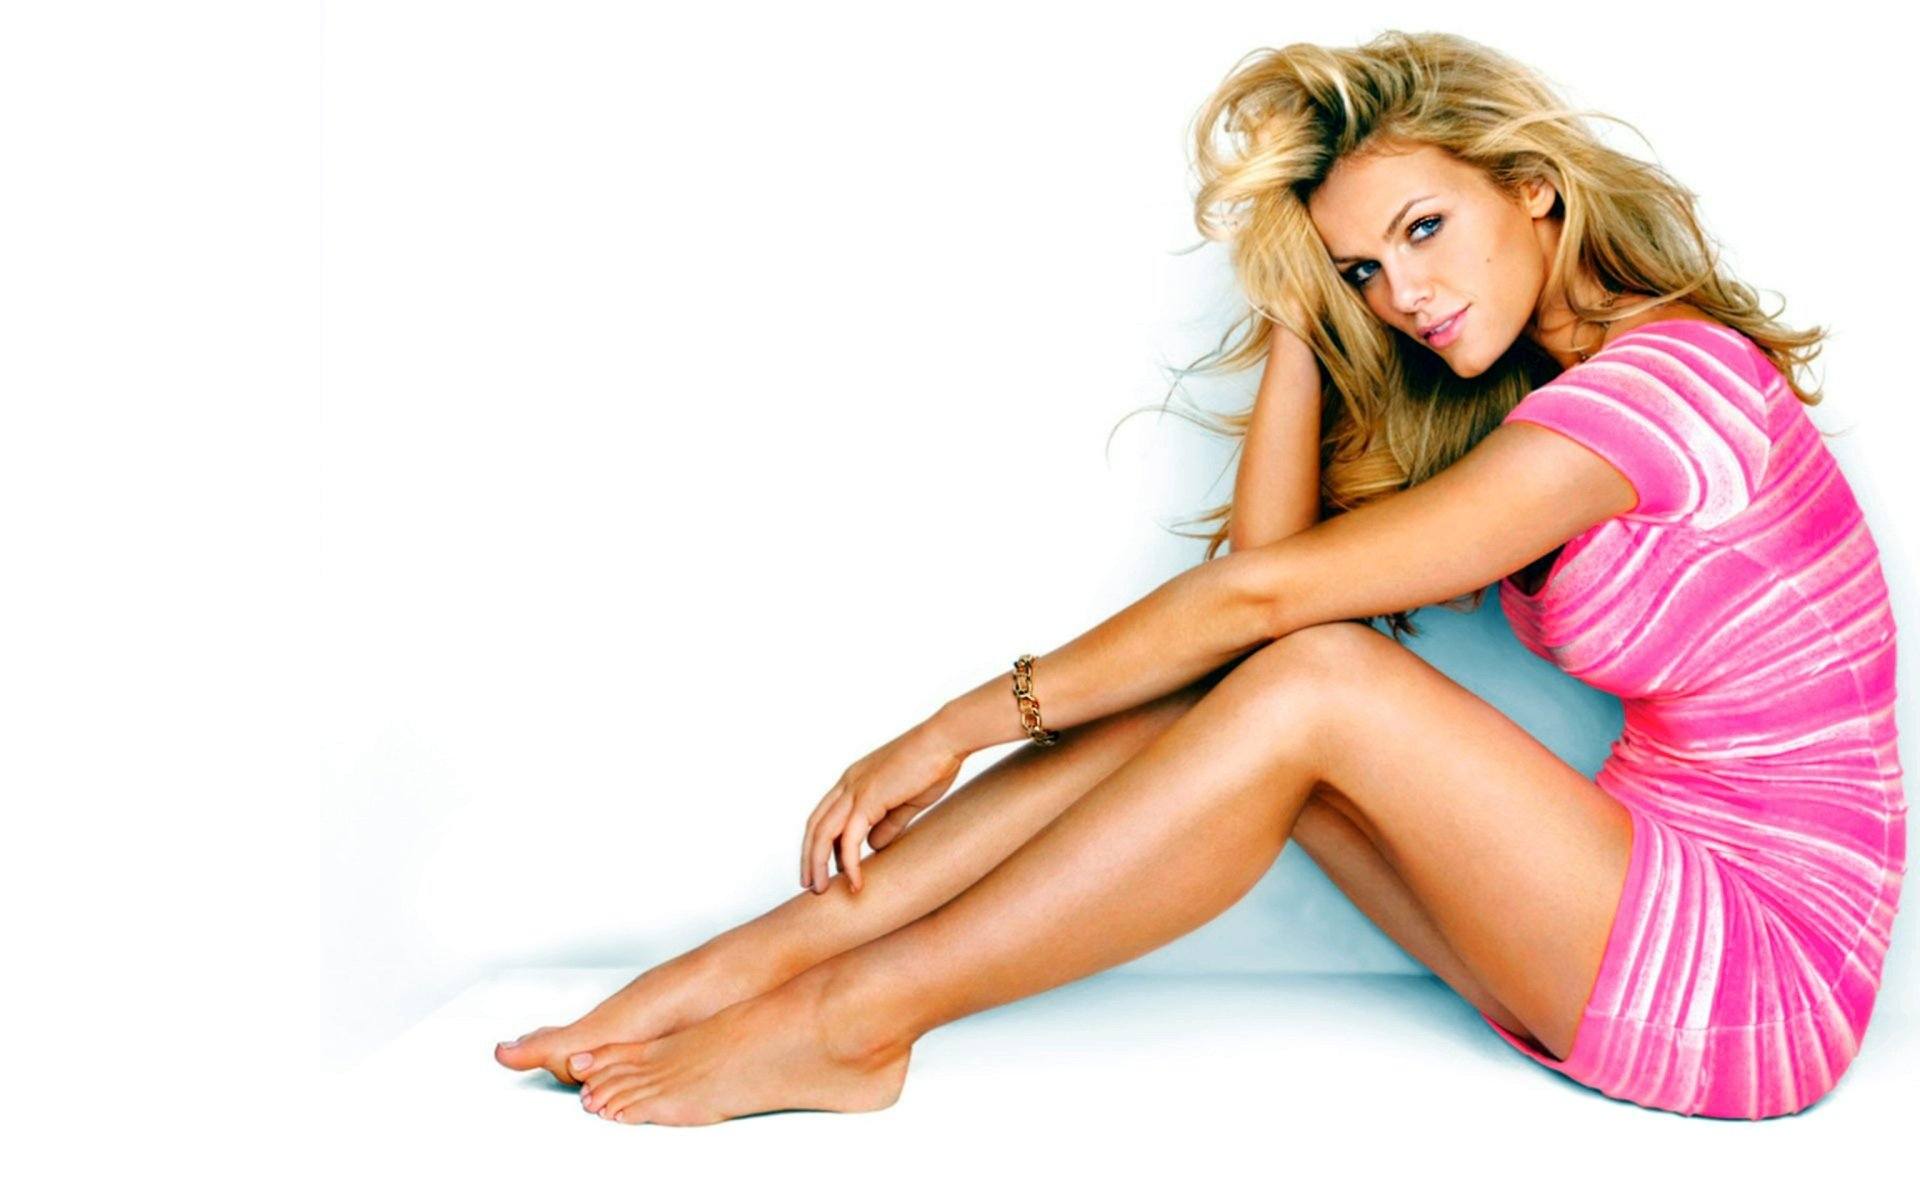 Women - Brooklyn Decker  Blonde Legs Model Wallpaper